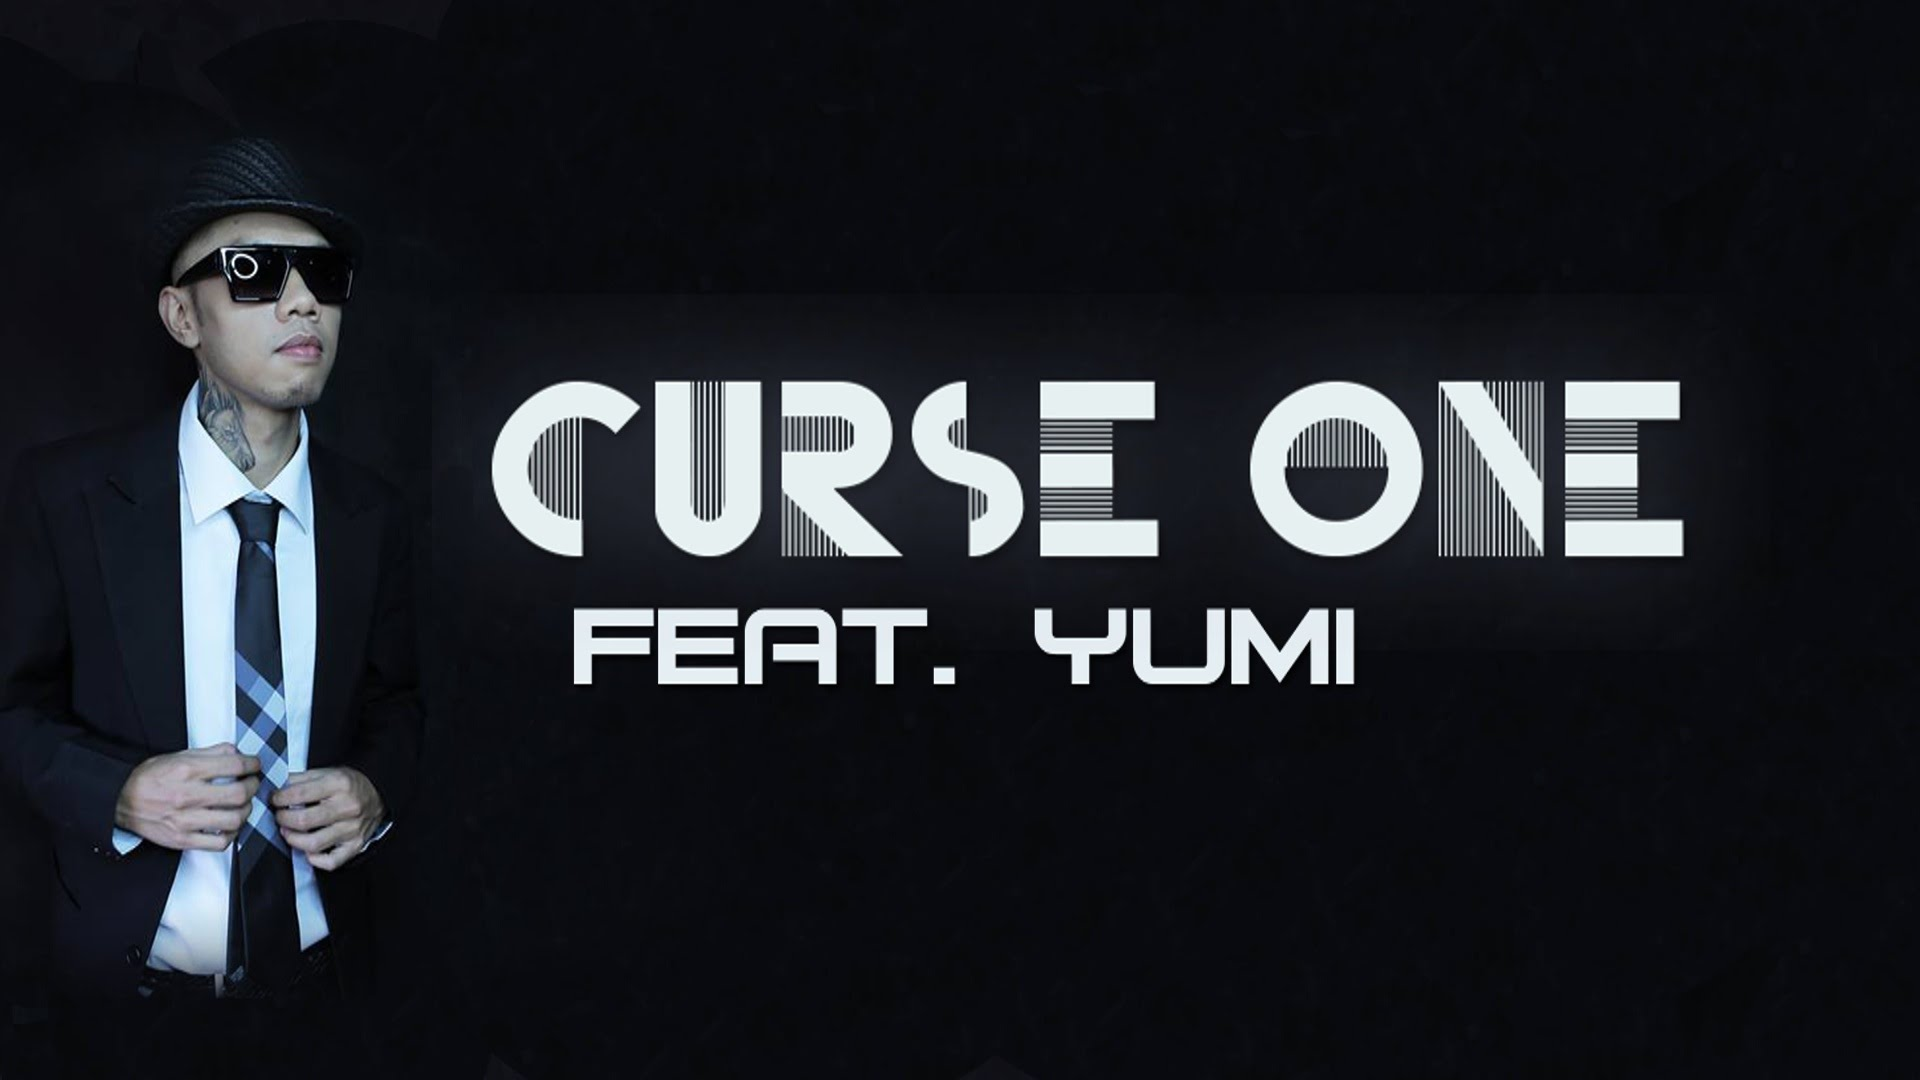 Download Curse One Wallpaper Gallery